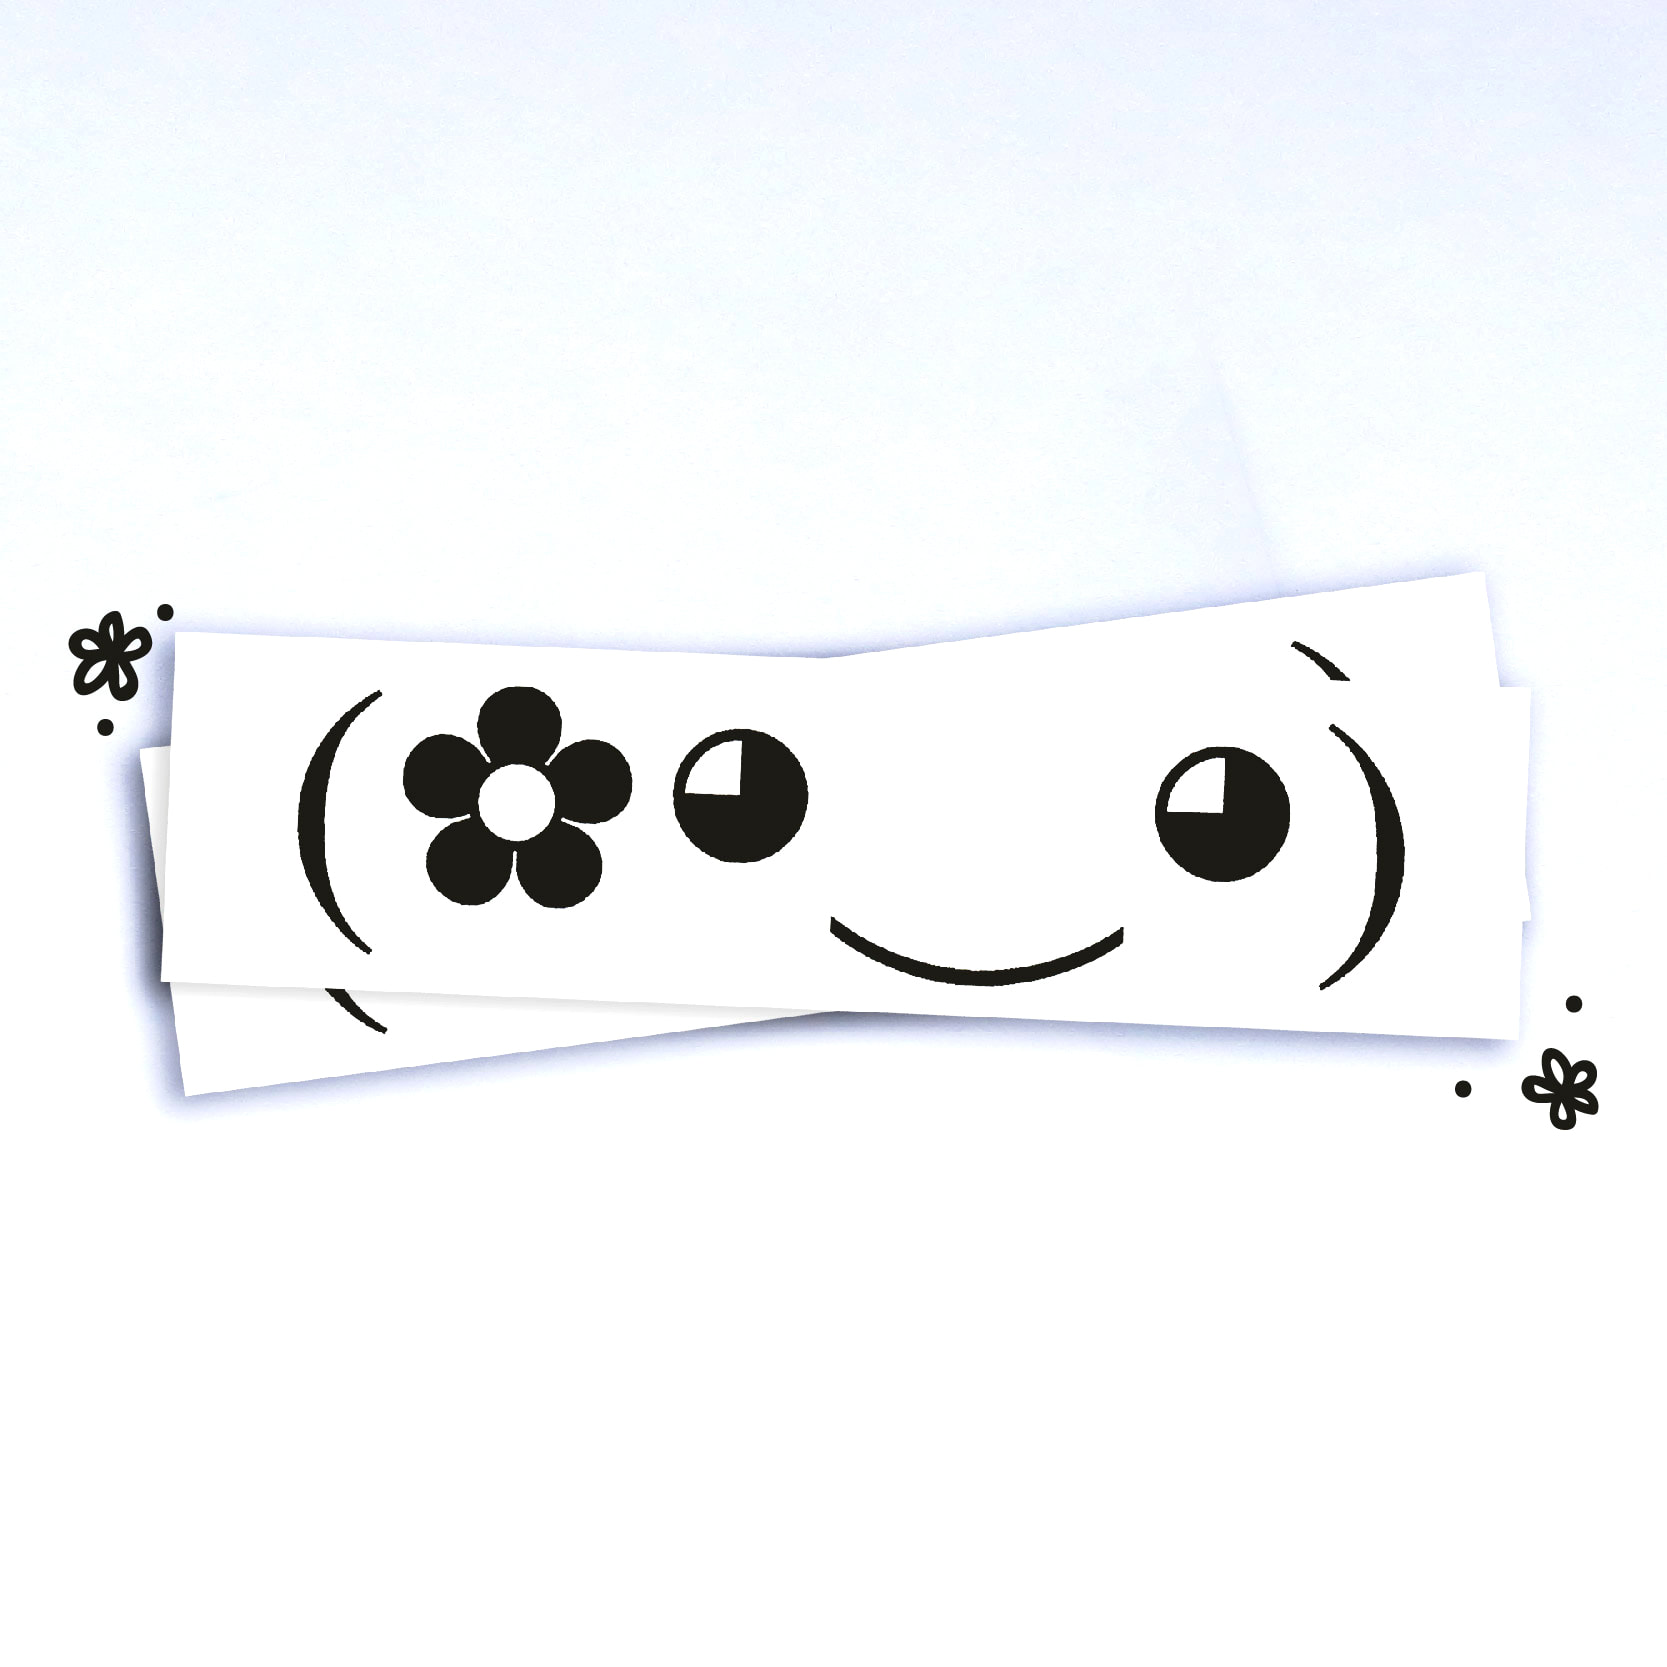 Flower pal kawaii emoji vinyl sticker 5 5x1 5